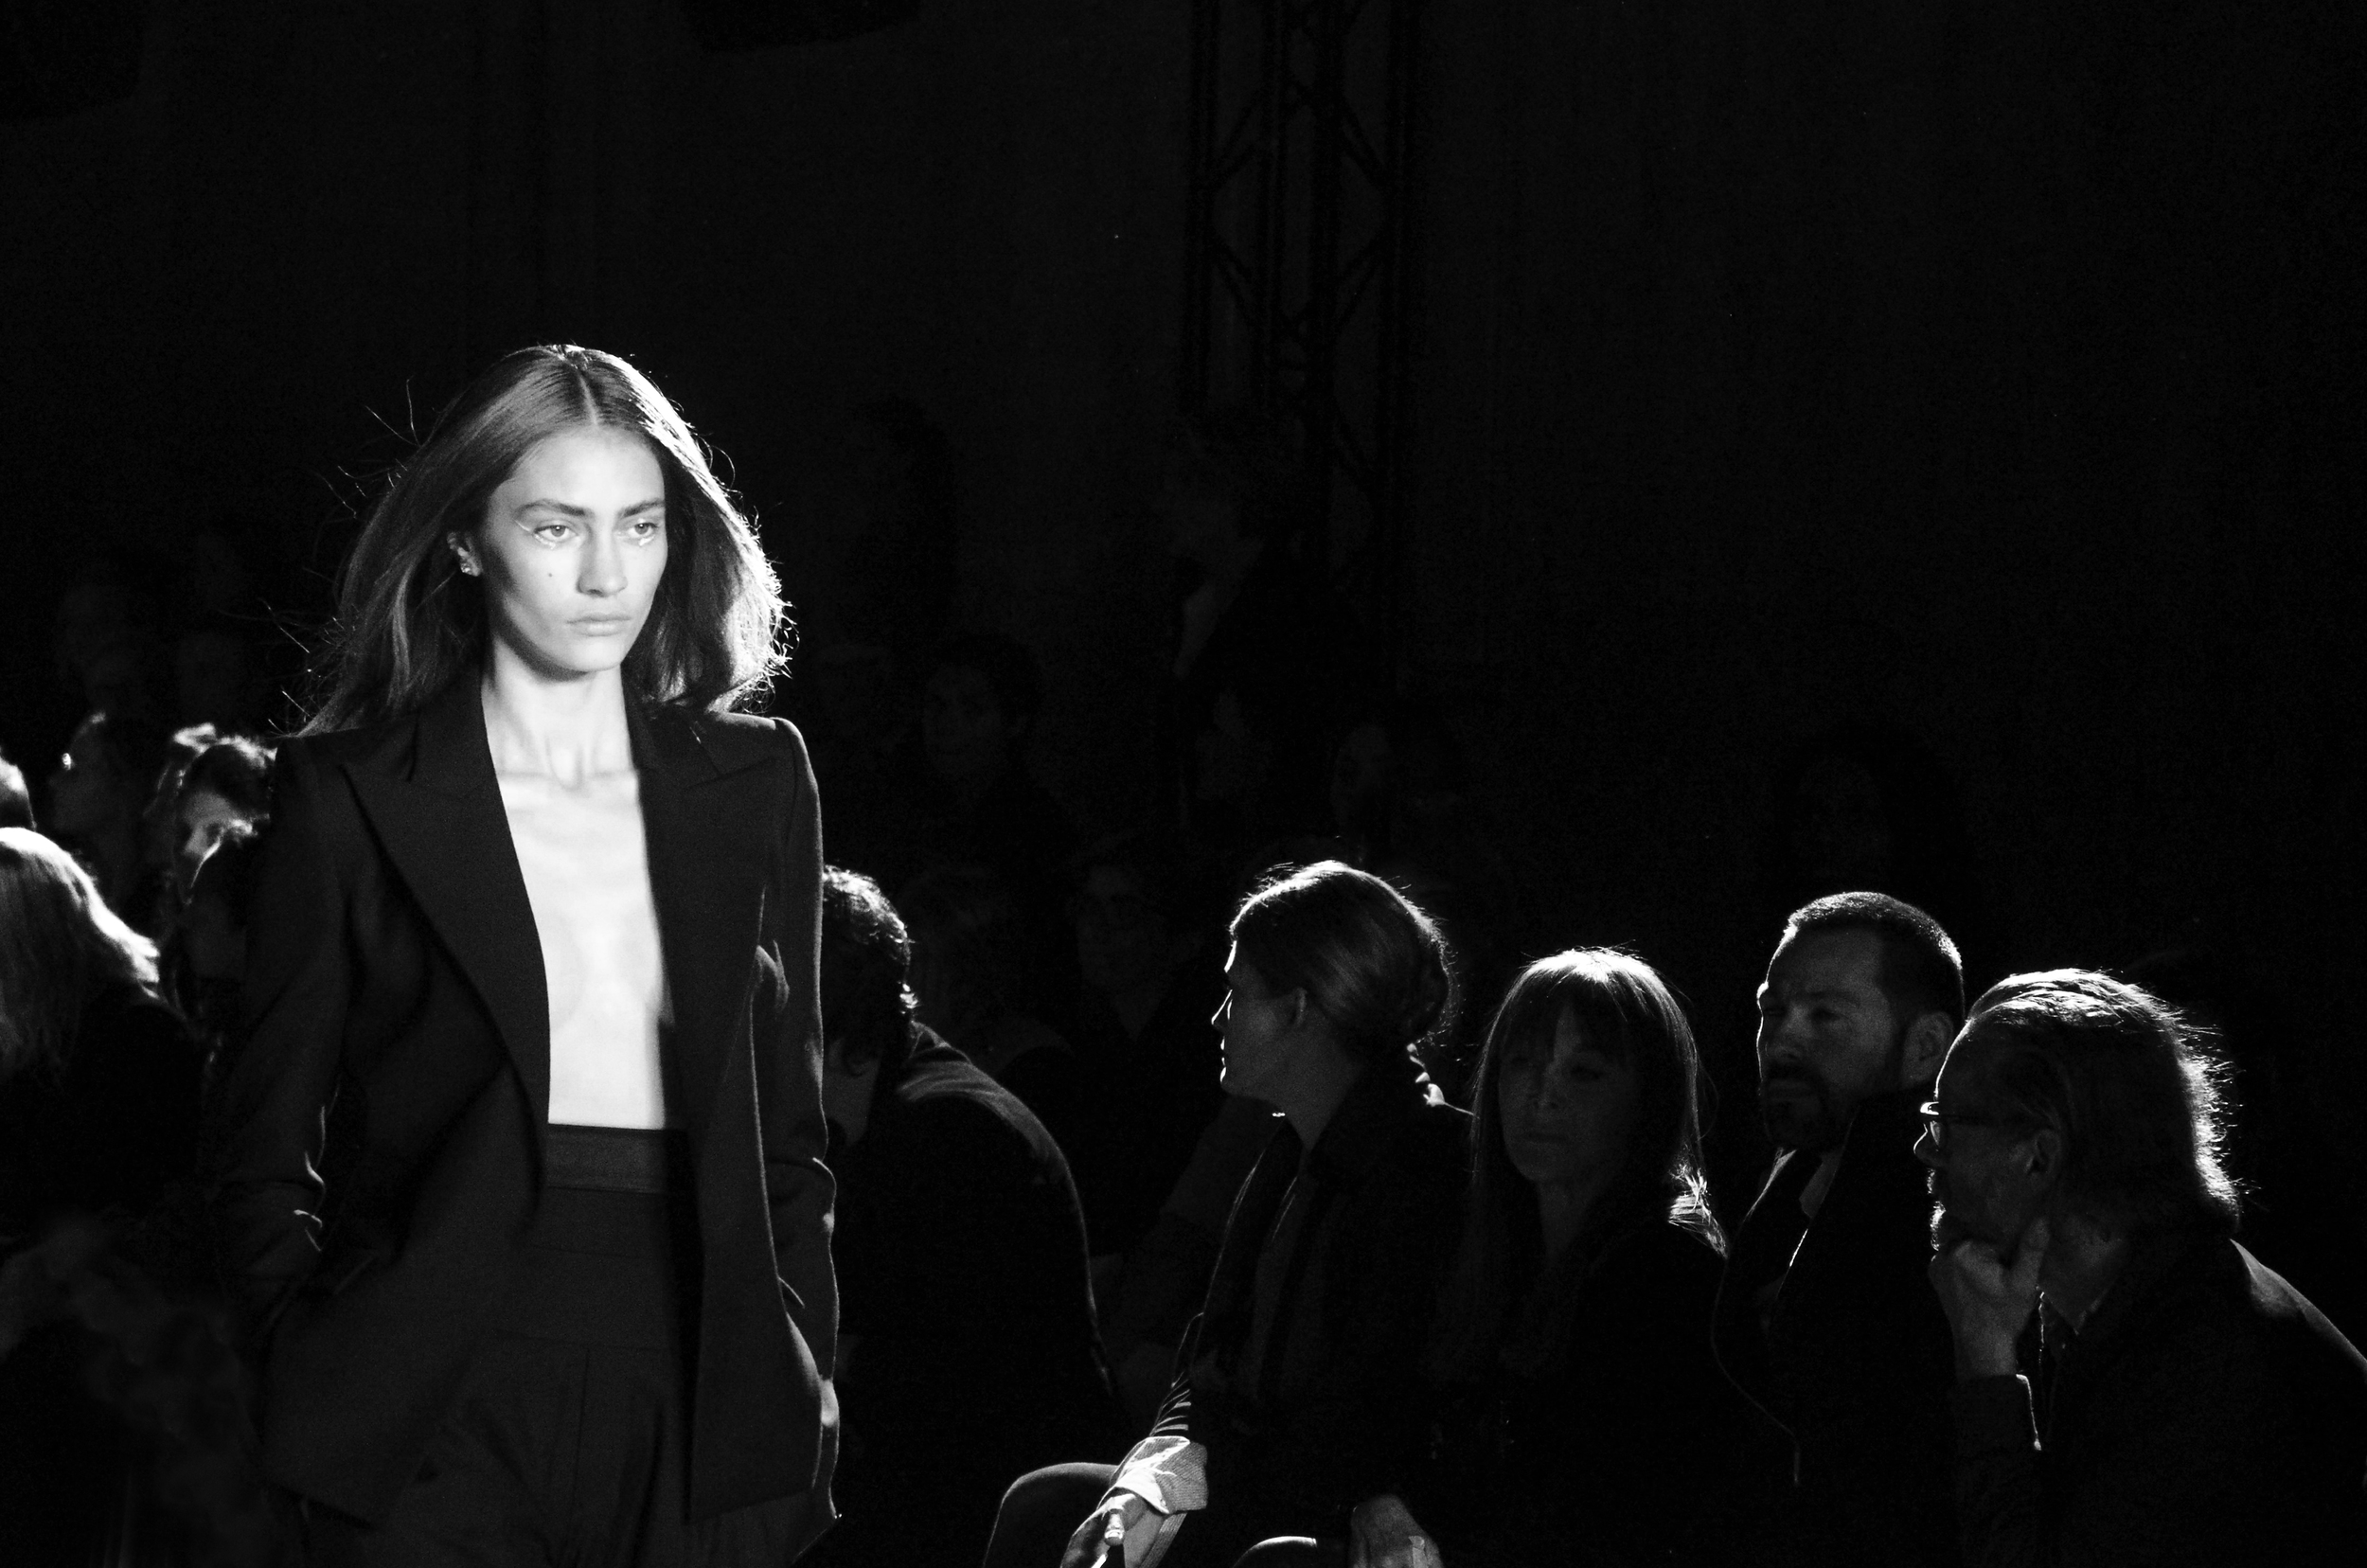 alexandre vauthier haute couture fall/winter 2014/15 model marine deleeuw photography by floriana castagna      | S/TUDIO